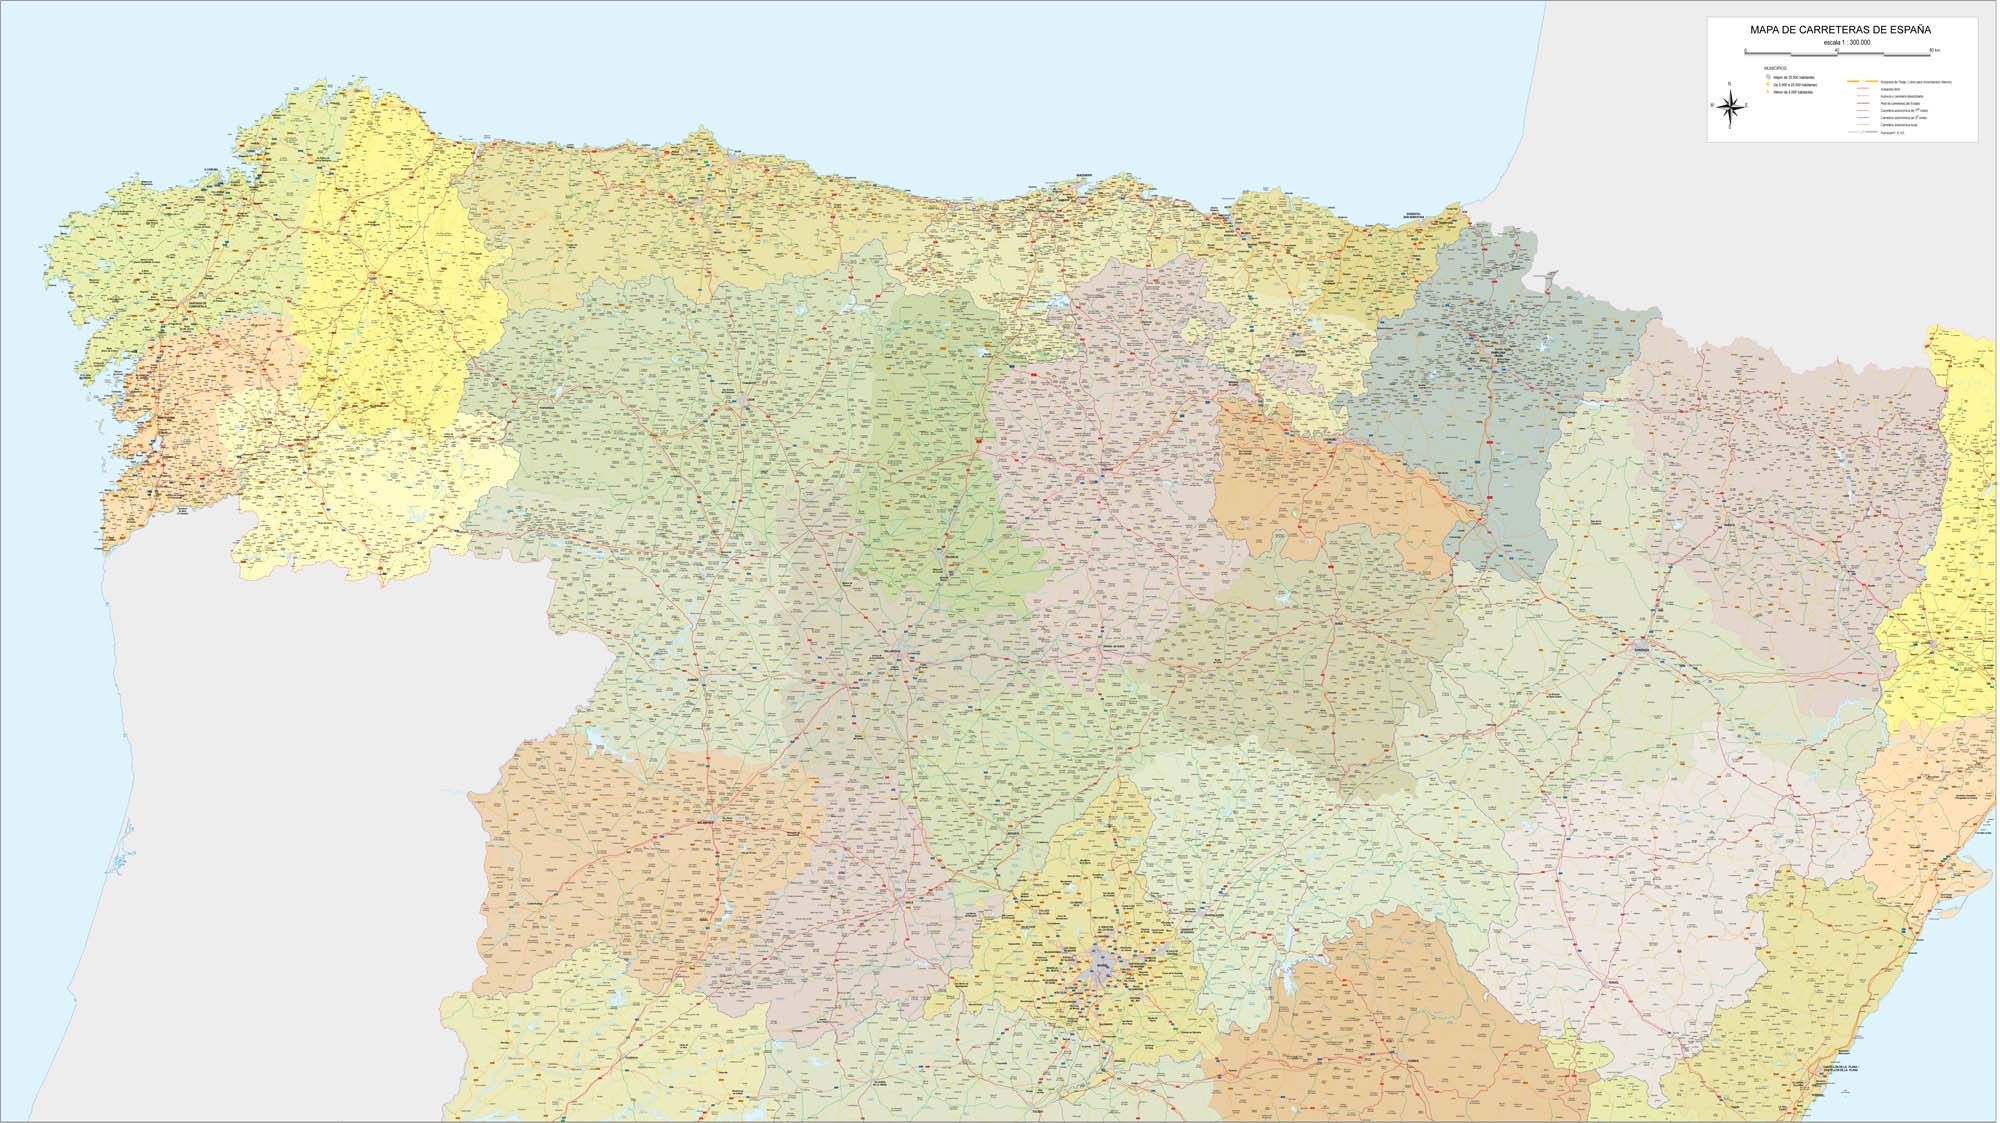 Roadmap of northwestern Spain